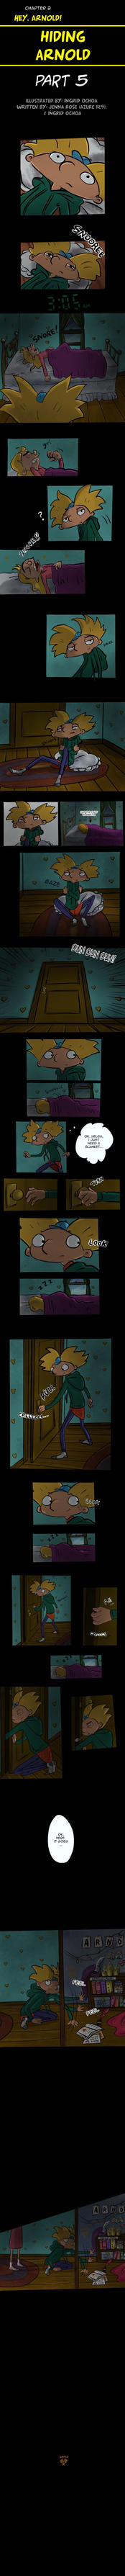 (PART 5) Hiding Arnold -Hey Arnold Comic by ingridochoa